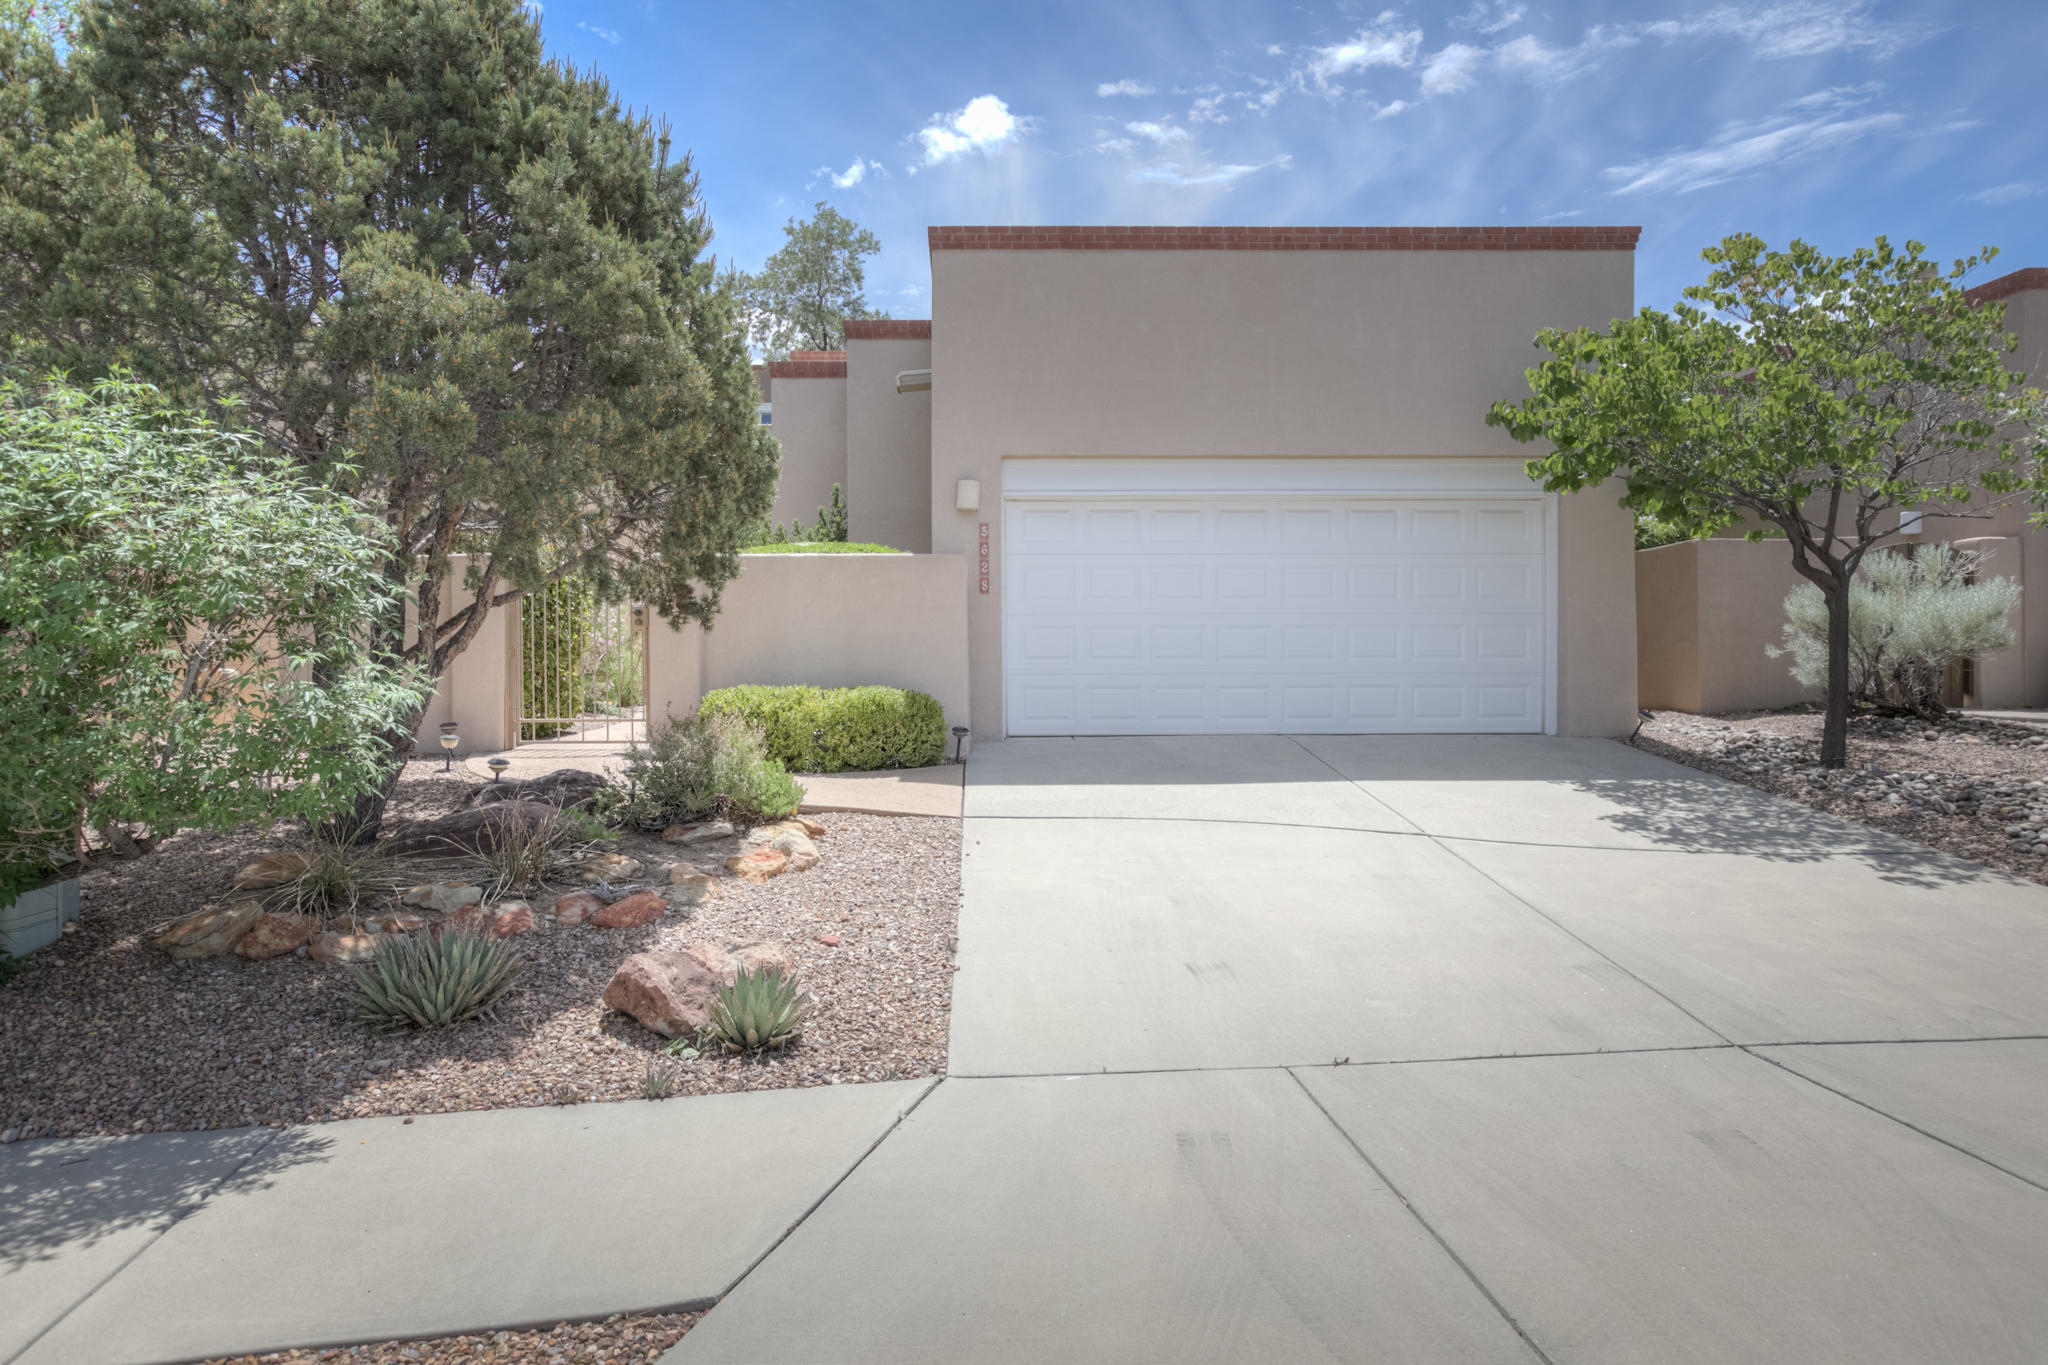 enjoy easy living!! Nestled in prestigous High Desert, Elegant territorial style patio home w/ private gated courtyard entrance. Stunning  Great room concept  w soaring ceiling, recessed lighting lots of great natural light, and a  gas fireplace.  Open living concept, gourmet kitchen w / island, pantry, beautiful tile backsplash,  , gas cook top and Eat in dining space w/ french doors to the out doors.  Gorgeous master suite w/ adjoining bathroom, double vanities, walk in shower, and walk in closet.  Radiant heat, evap . cooling, skylights,  , New TPO roof in 2019, brand new hot water heater 1/08/2020.  Low maintenance easy care yard w/ patio and lots of privacy.